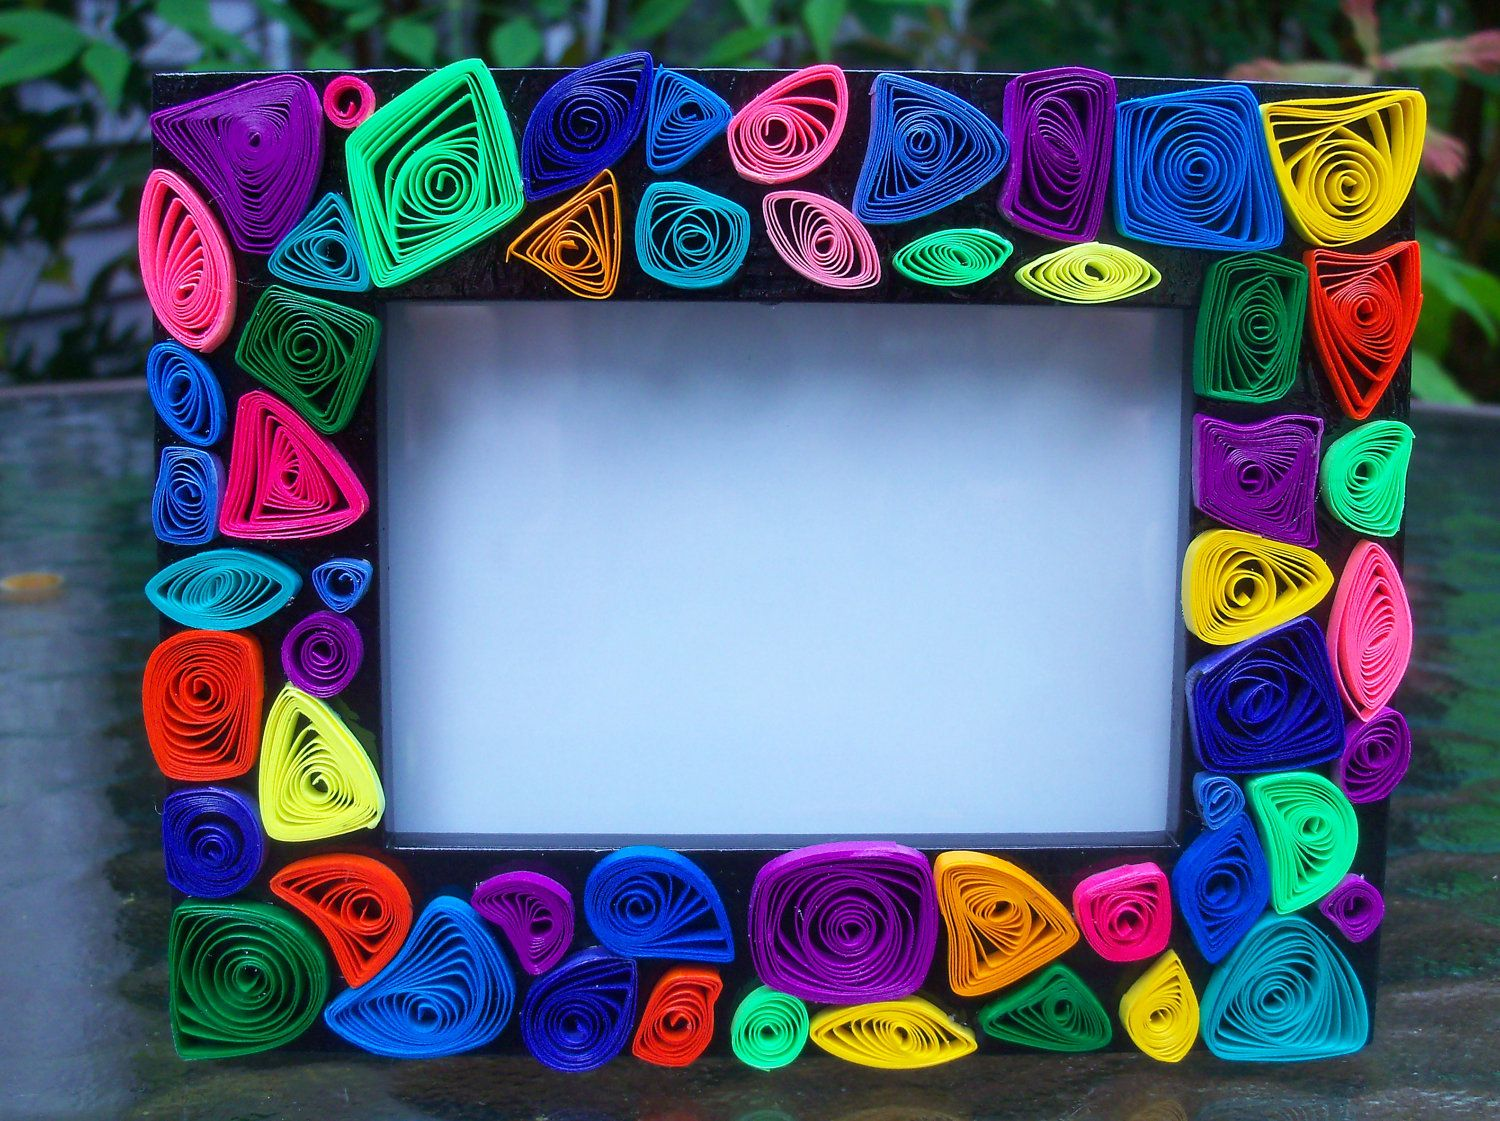 50 new picture frame colorful paper quilled embellished wooden frame 2 x 3 inch jeuxipadfo Gallery